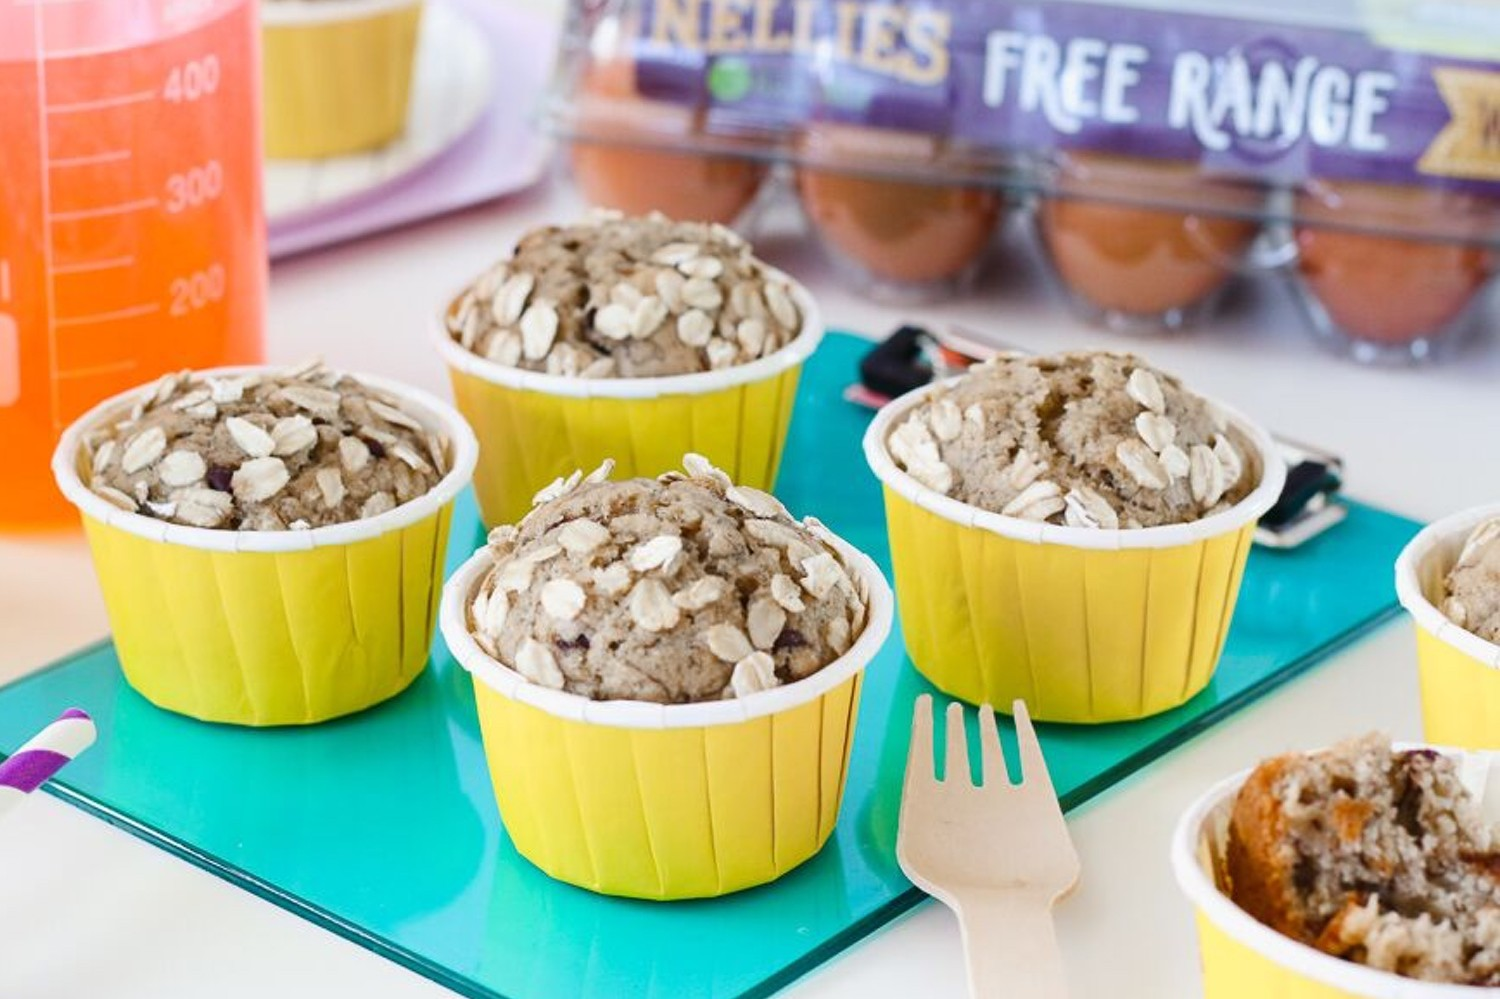 Healthy banana oat chocolate chip muffins packed with protein, whole grains, potassium, and healthy fats. | nelliesfreerange.com